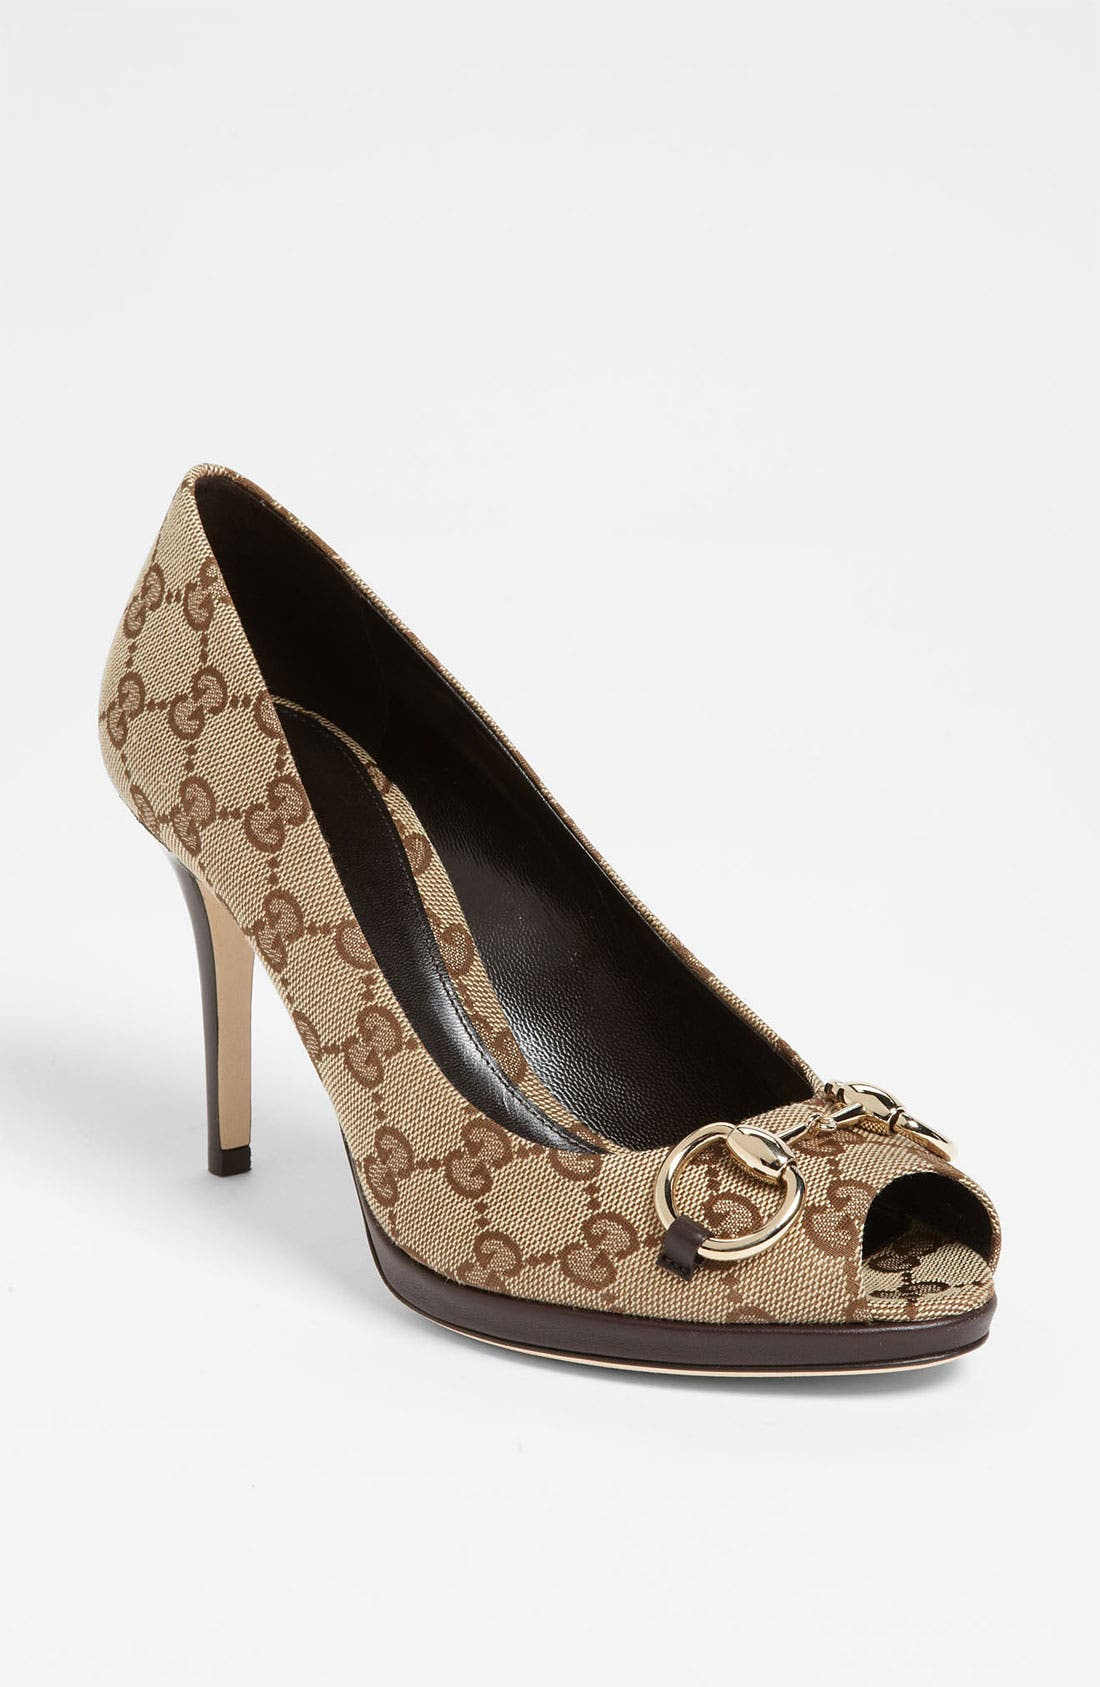 Main Image - Gucci 'New Hollywood' Platform Pump